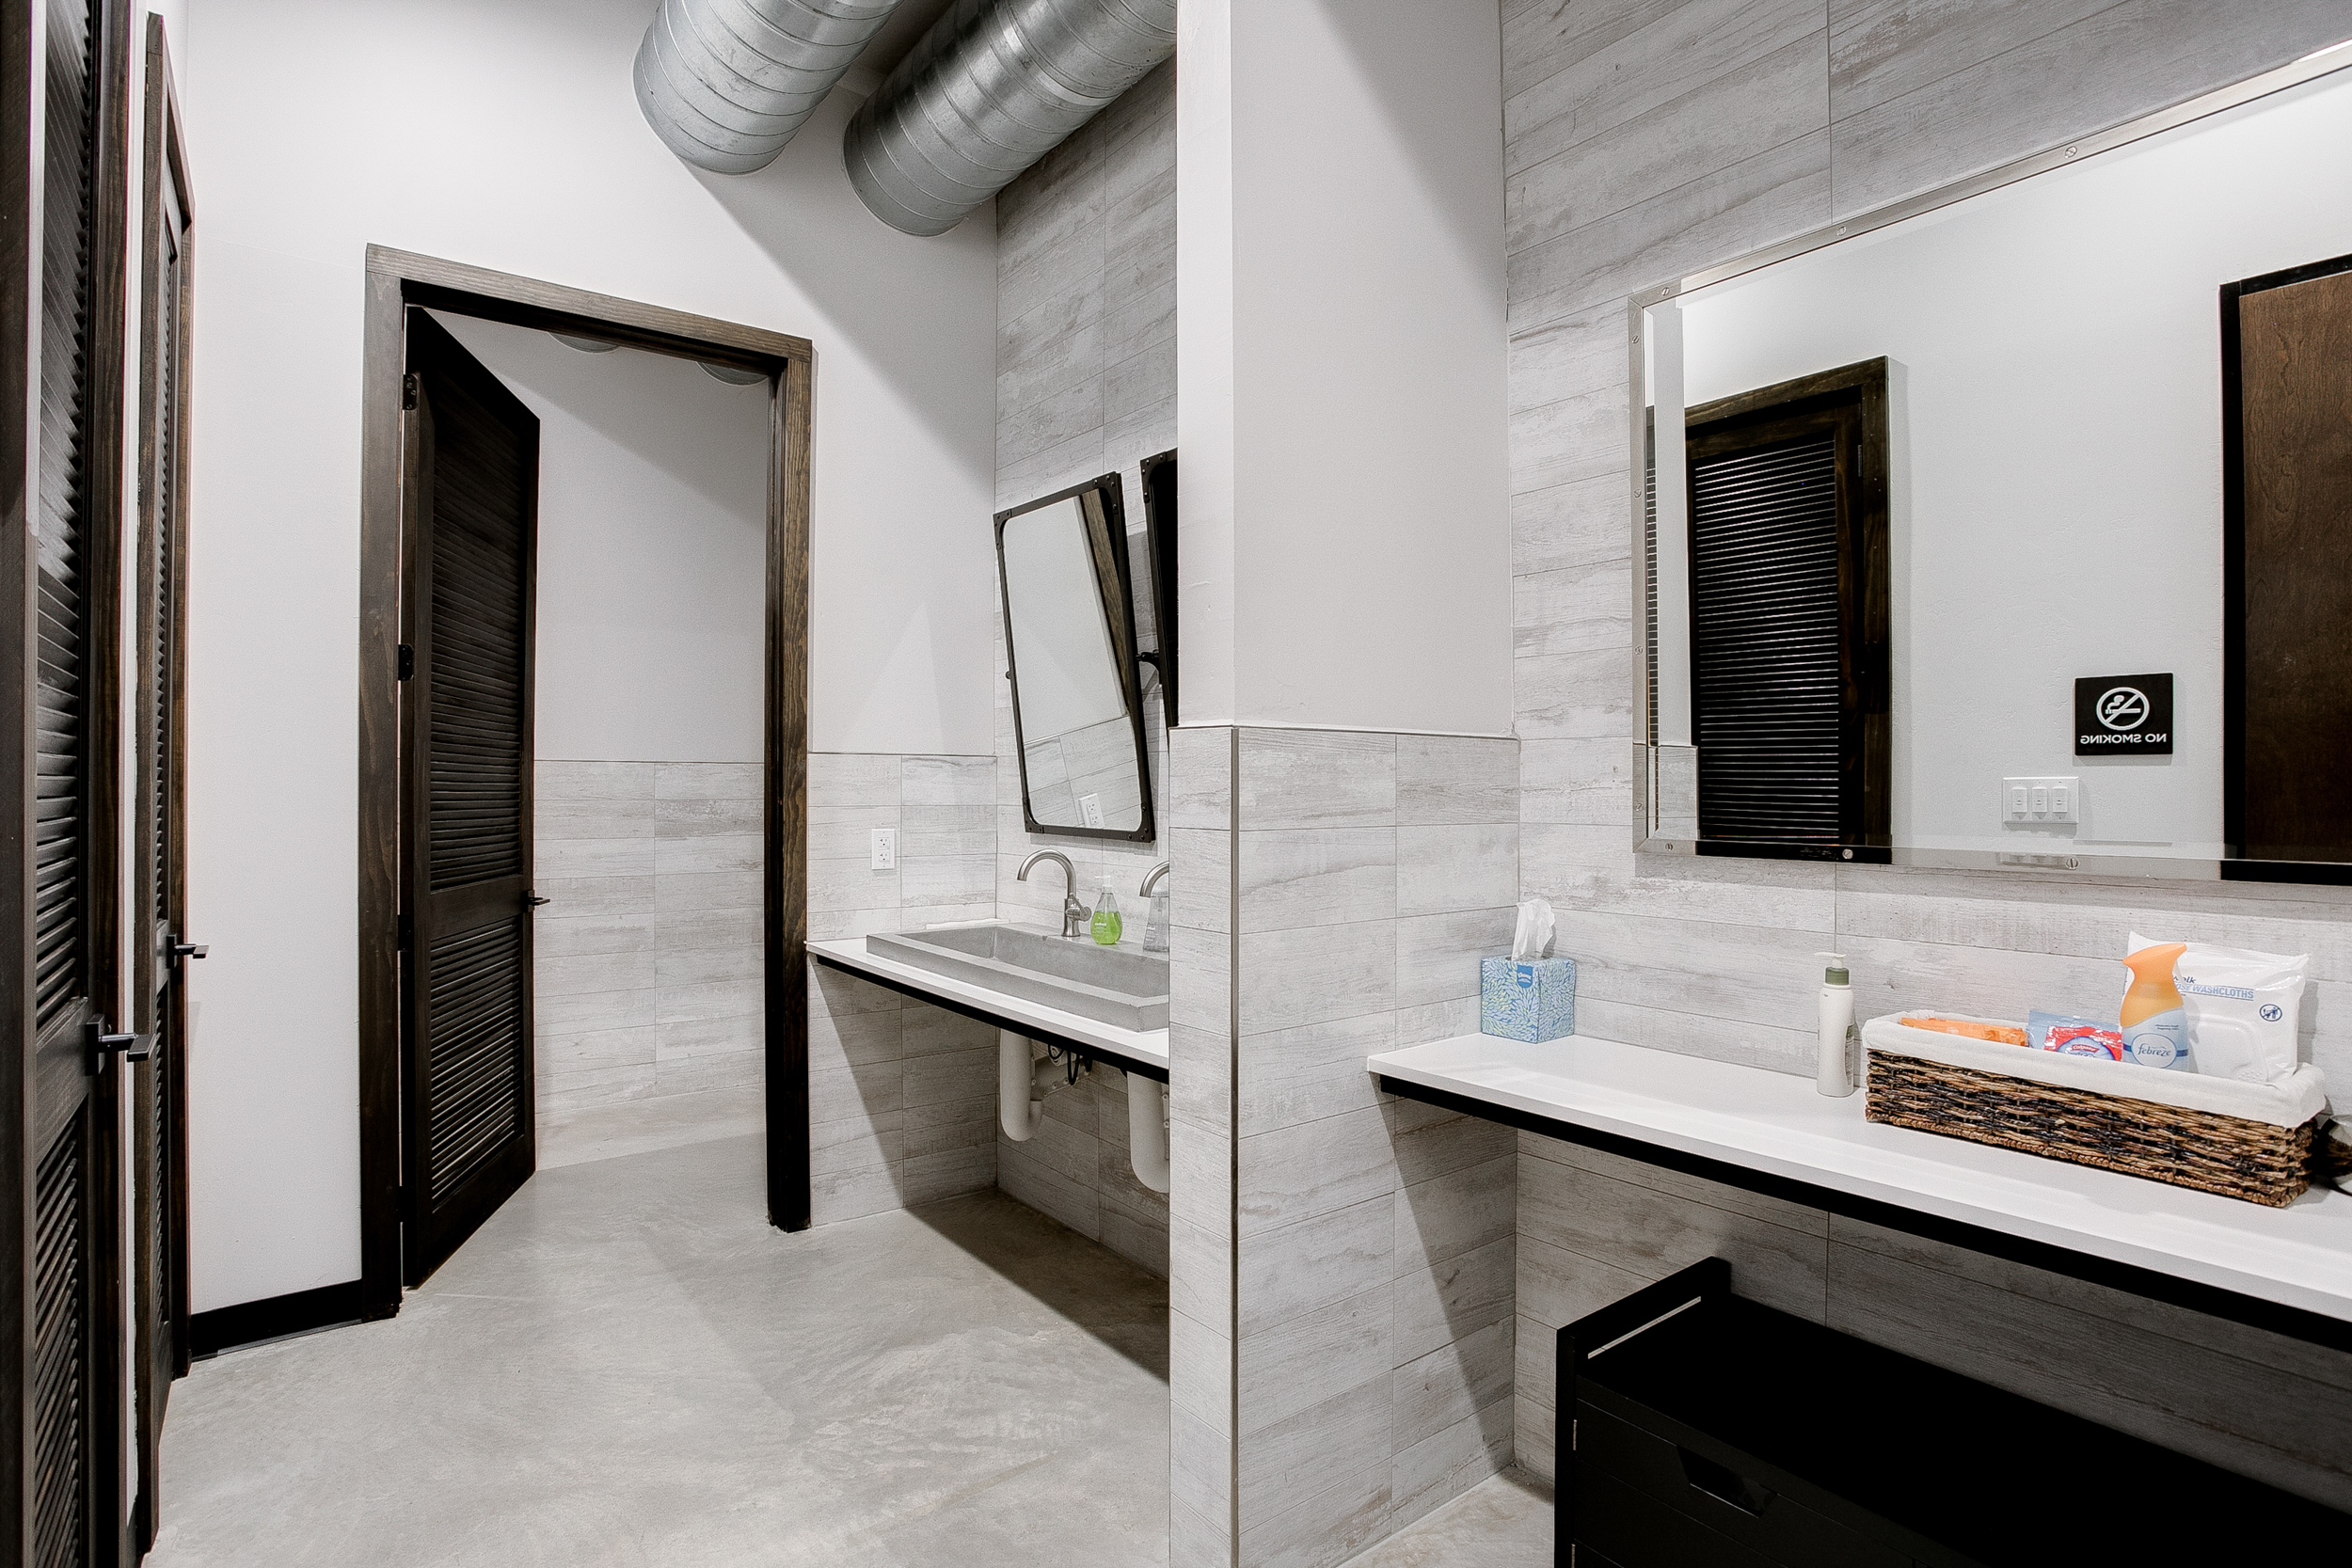 View of the women's restroom inside of 105 Nursery Lane with grey tiled floors and walls, and wooden doors for each stall